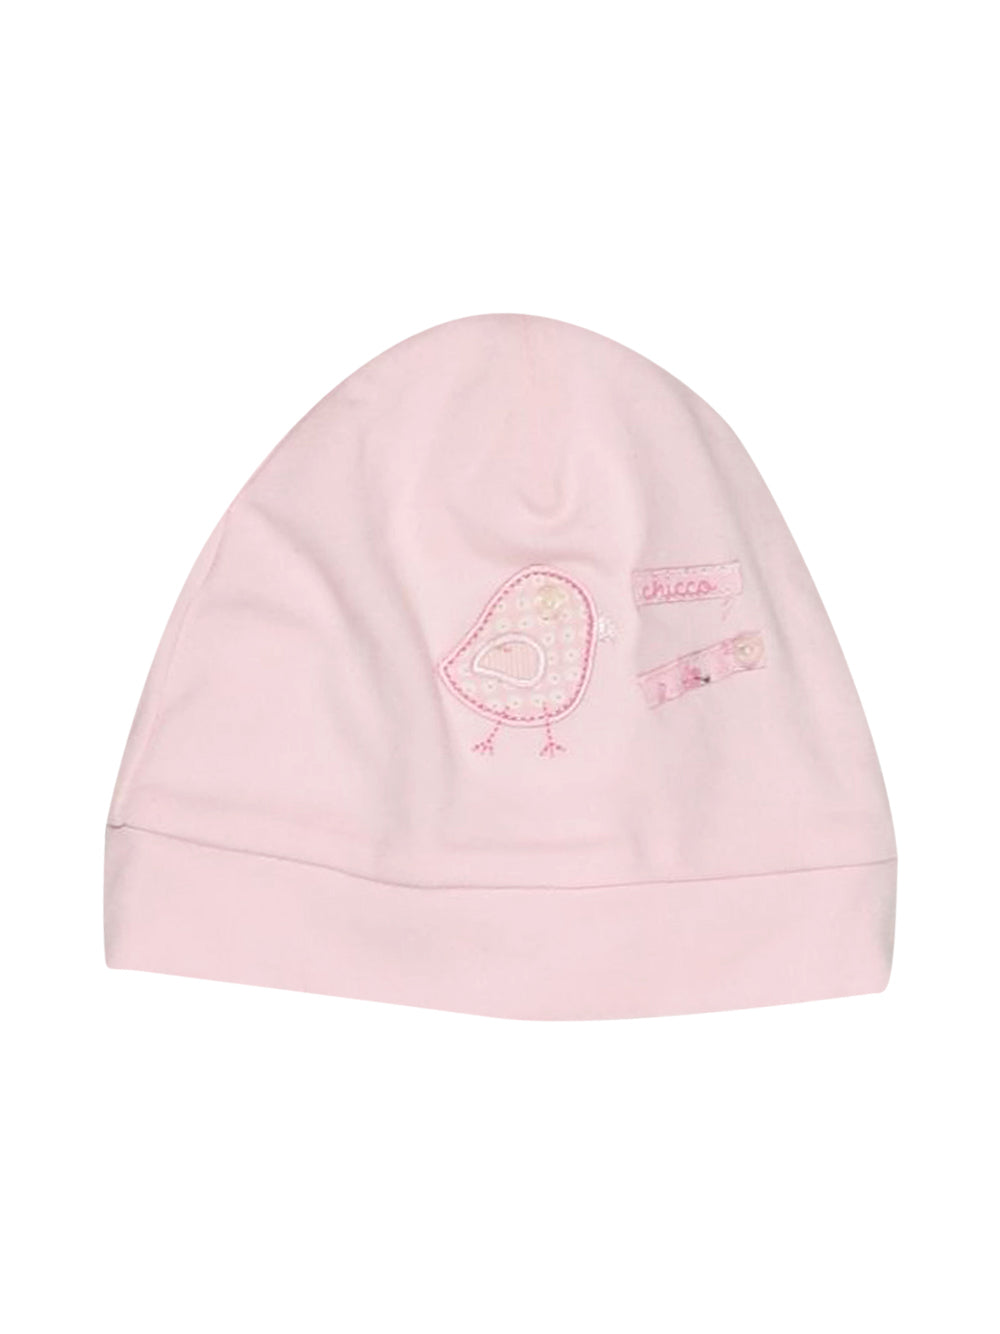 Front photo of Preloved Chicco Pink Girl's hat - size 18-24 mths